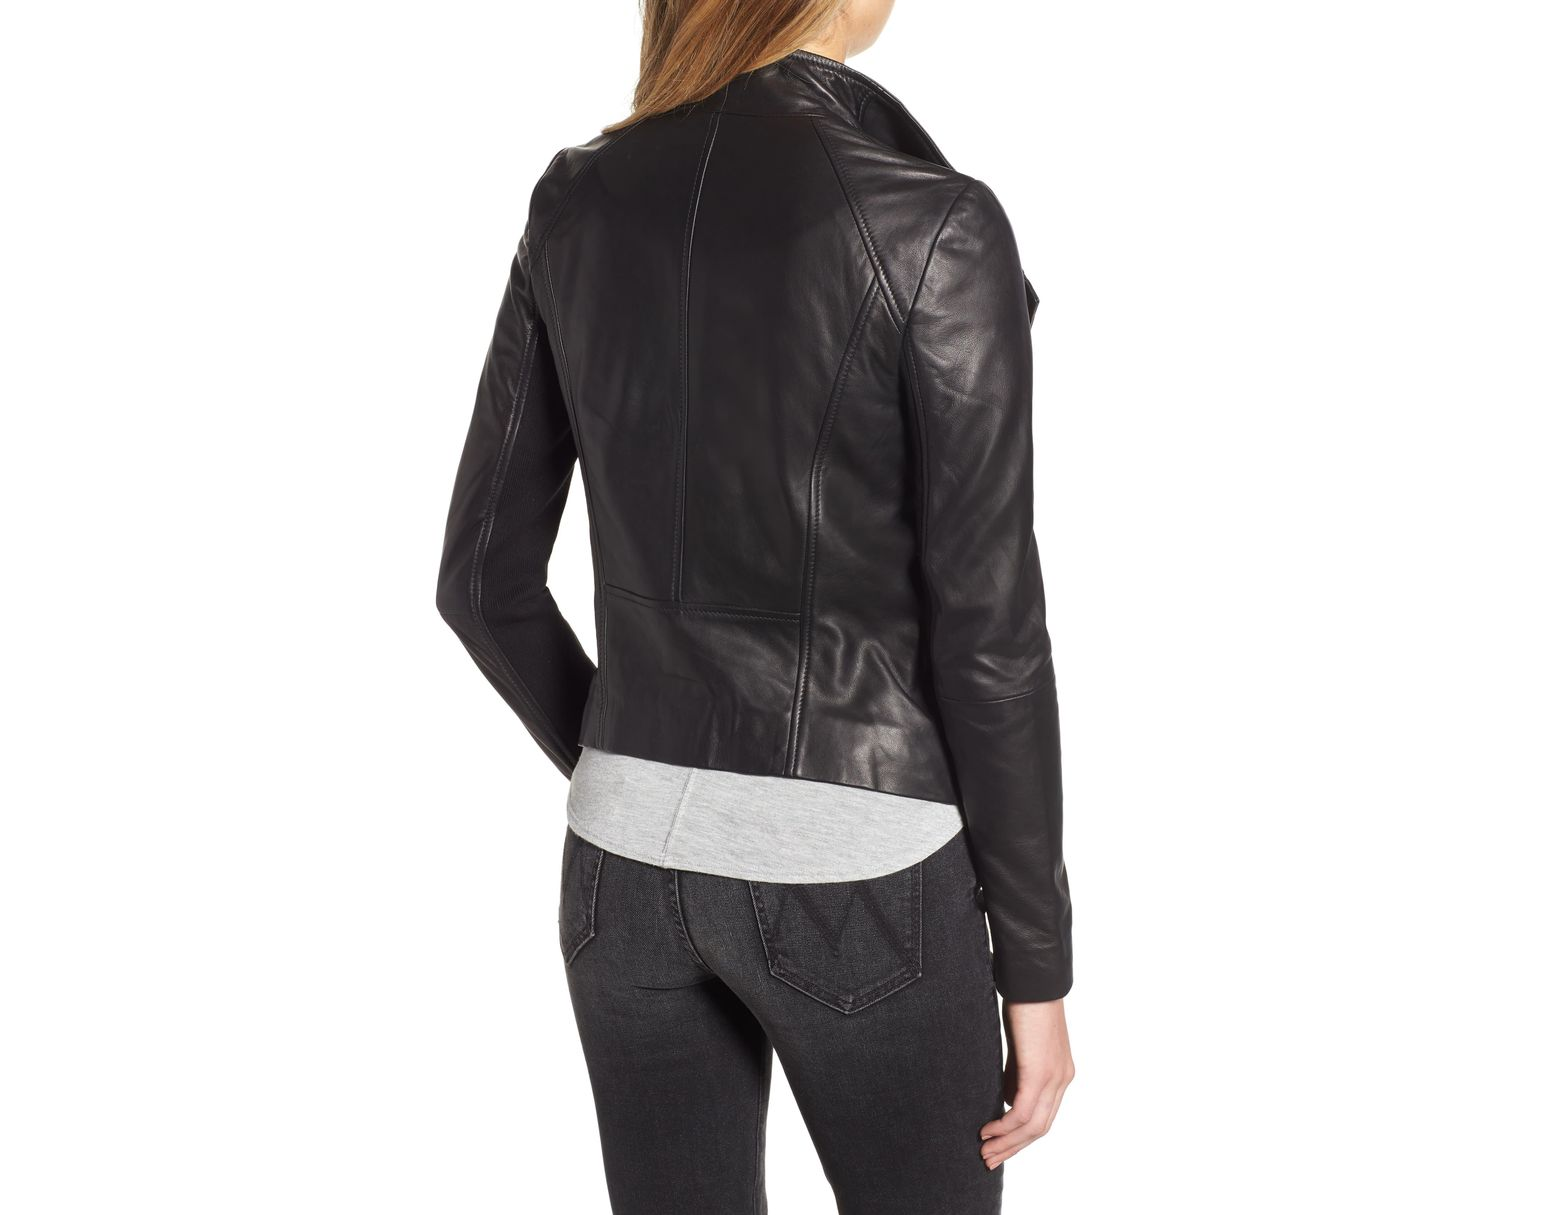 ae9f45337c3 Chelsea28 Leather Moto Jacket in Black - Lyst